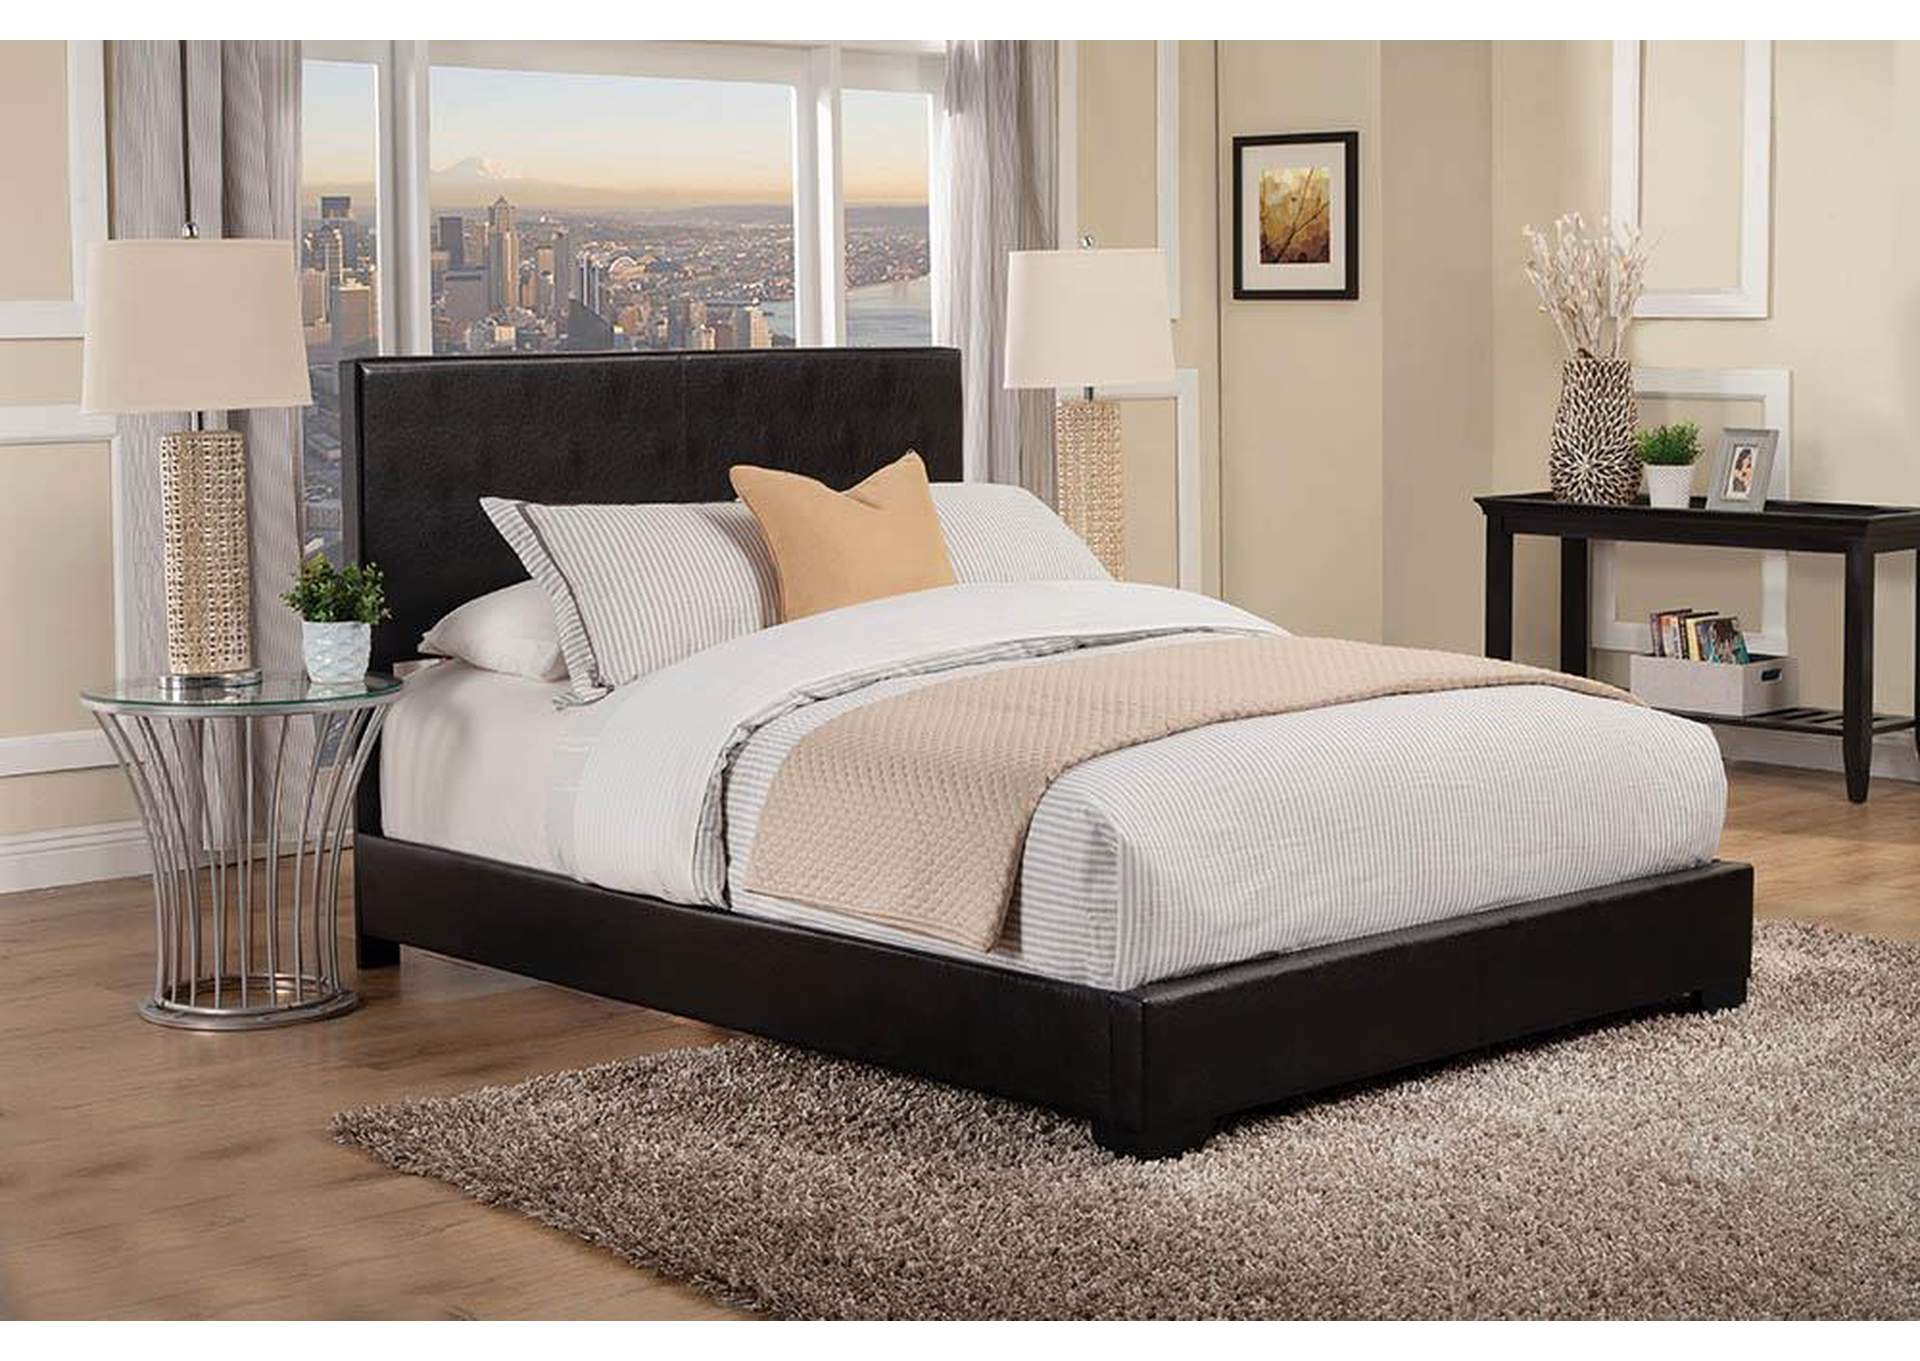 Licorice Conner Casual Black Upholstered Queen Bed,Coaster Furniture